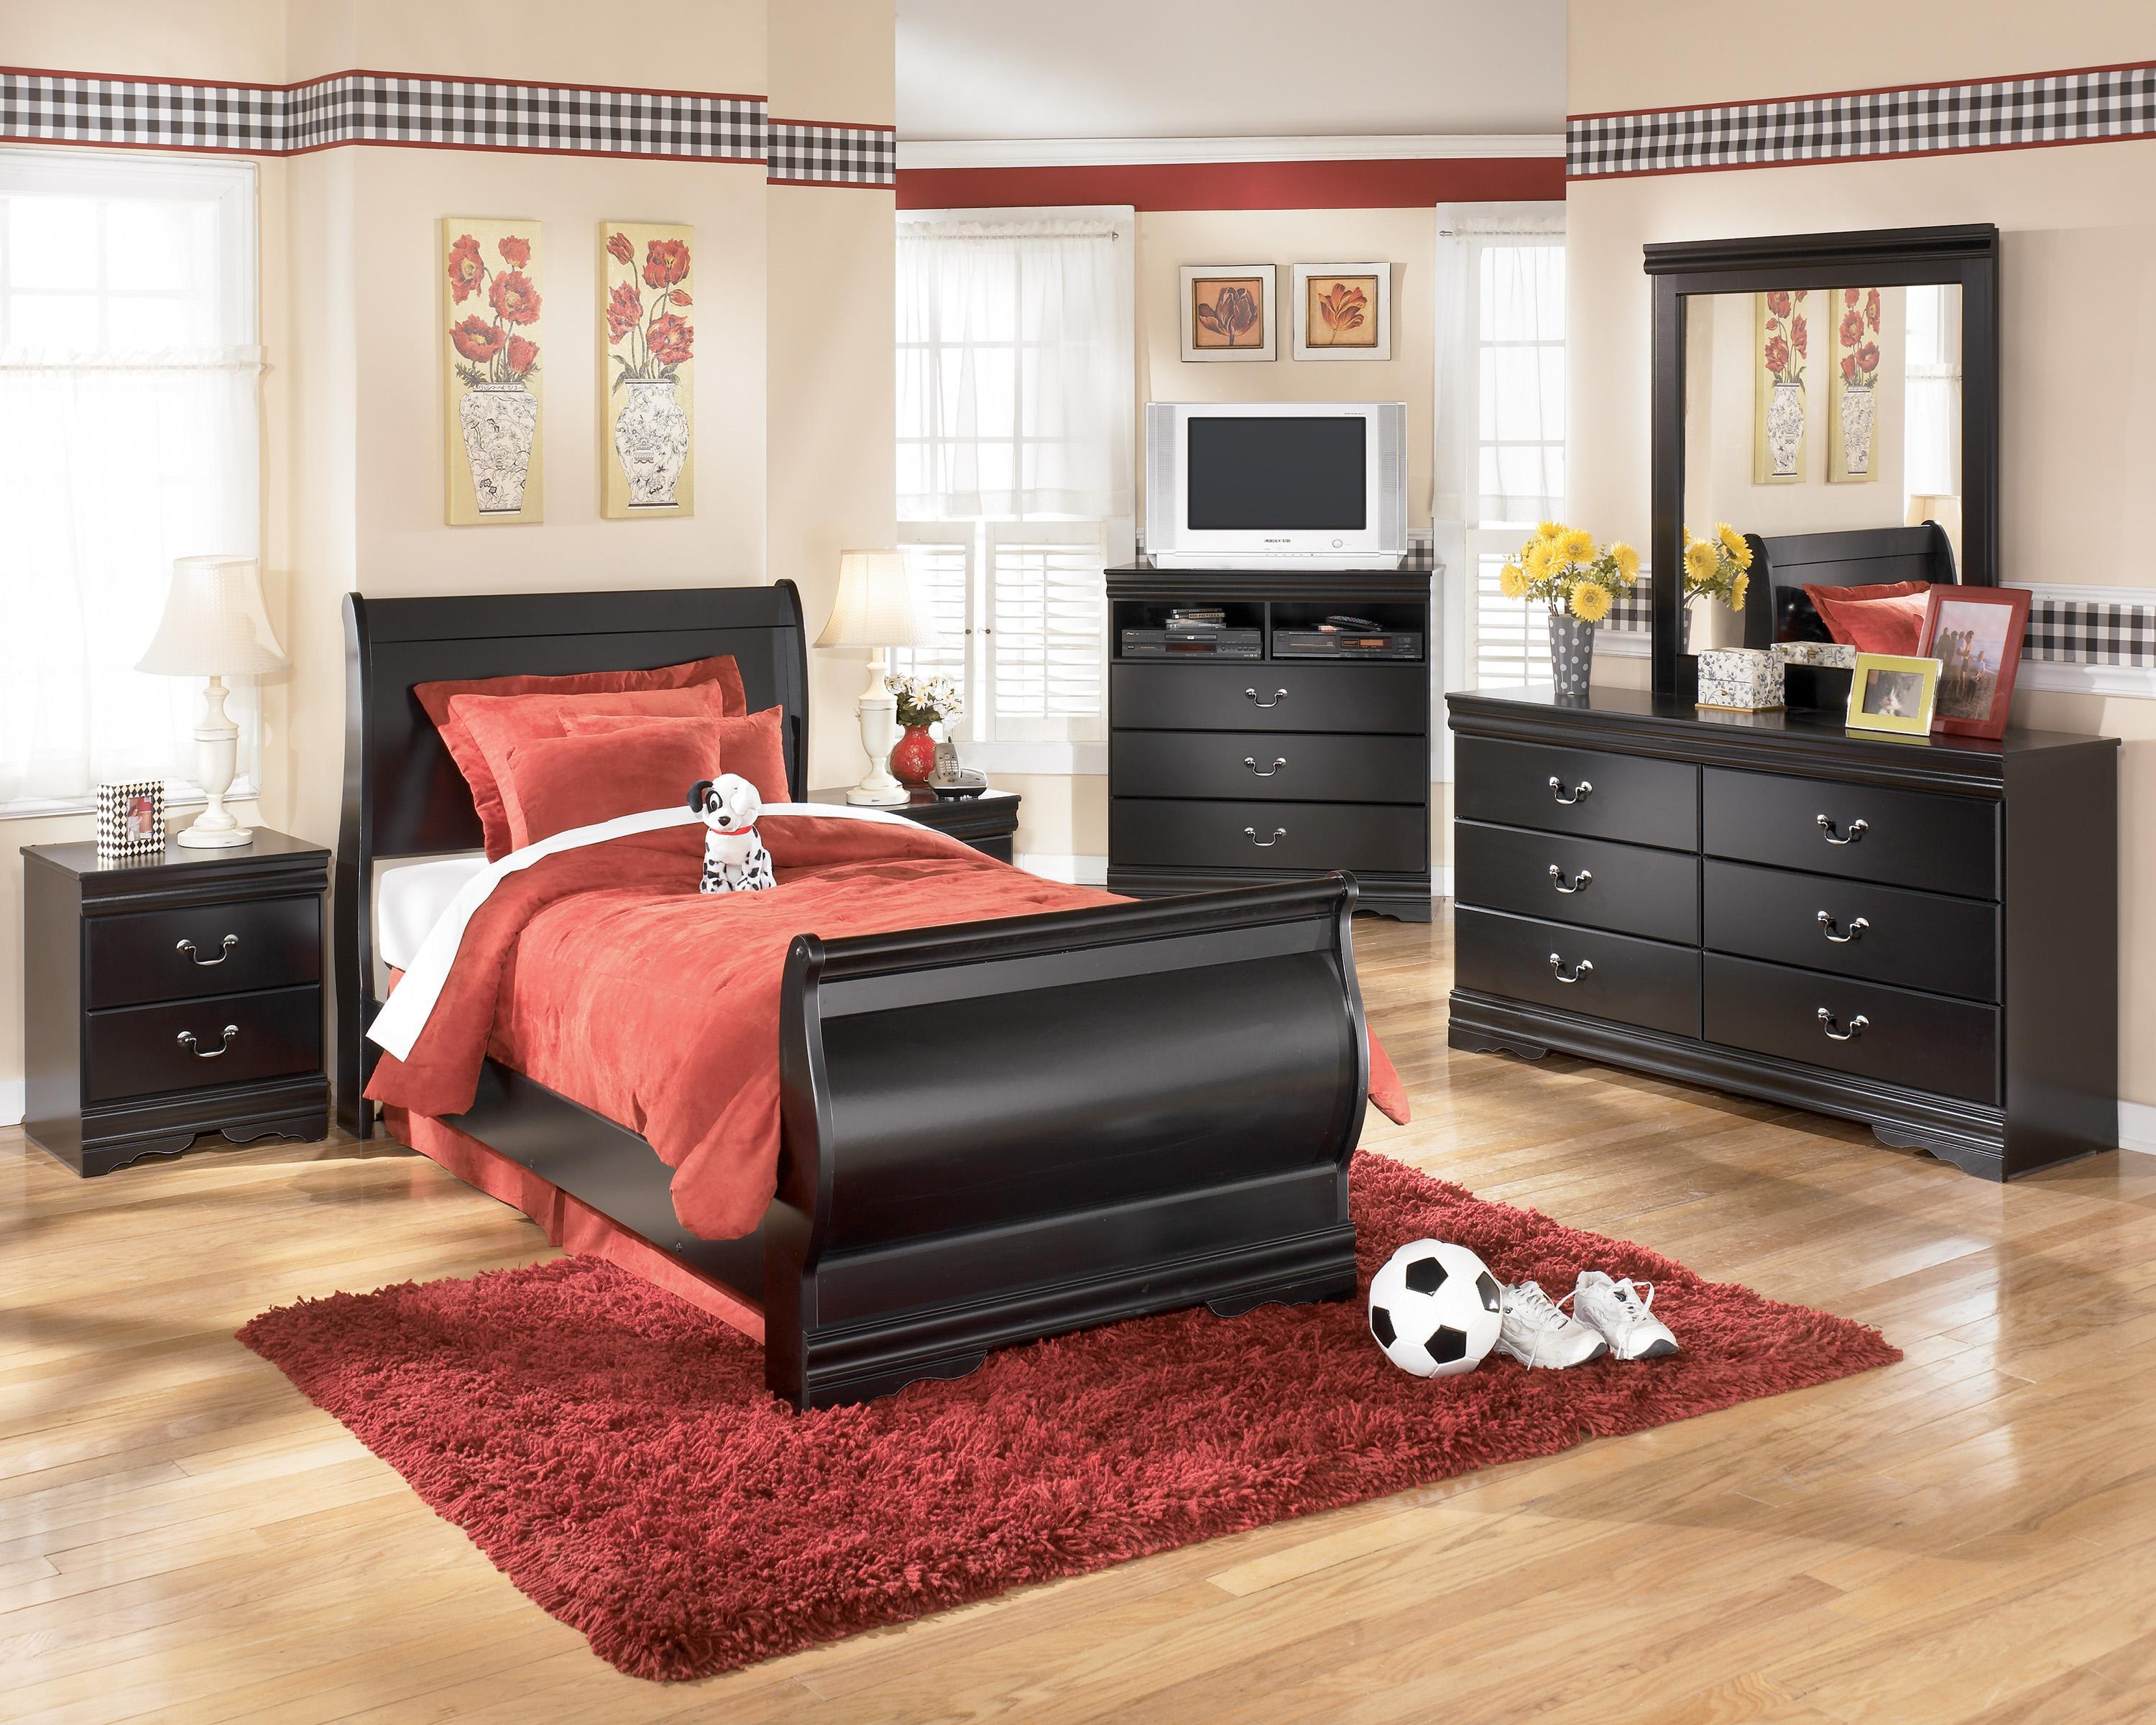 Signature Design by Ashley Huey Vineyard 4 Piece Bedroom Group - Item Number: B128 T 4 Piece